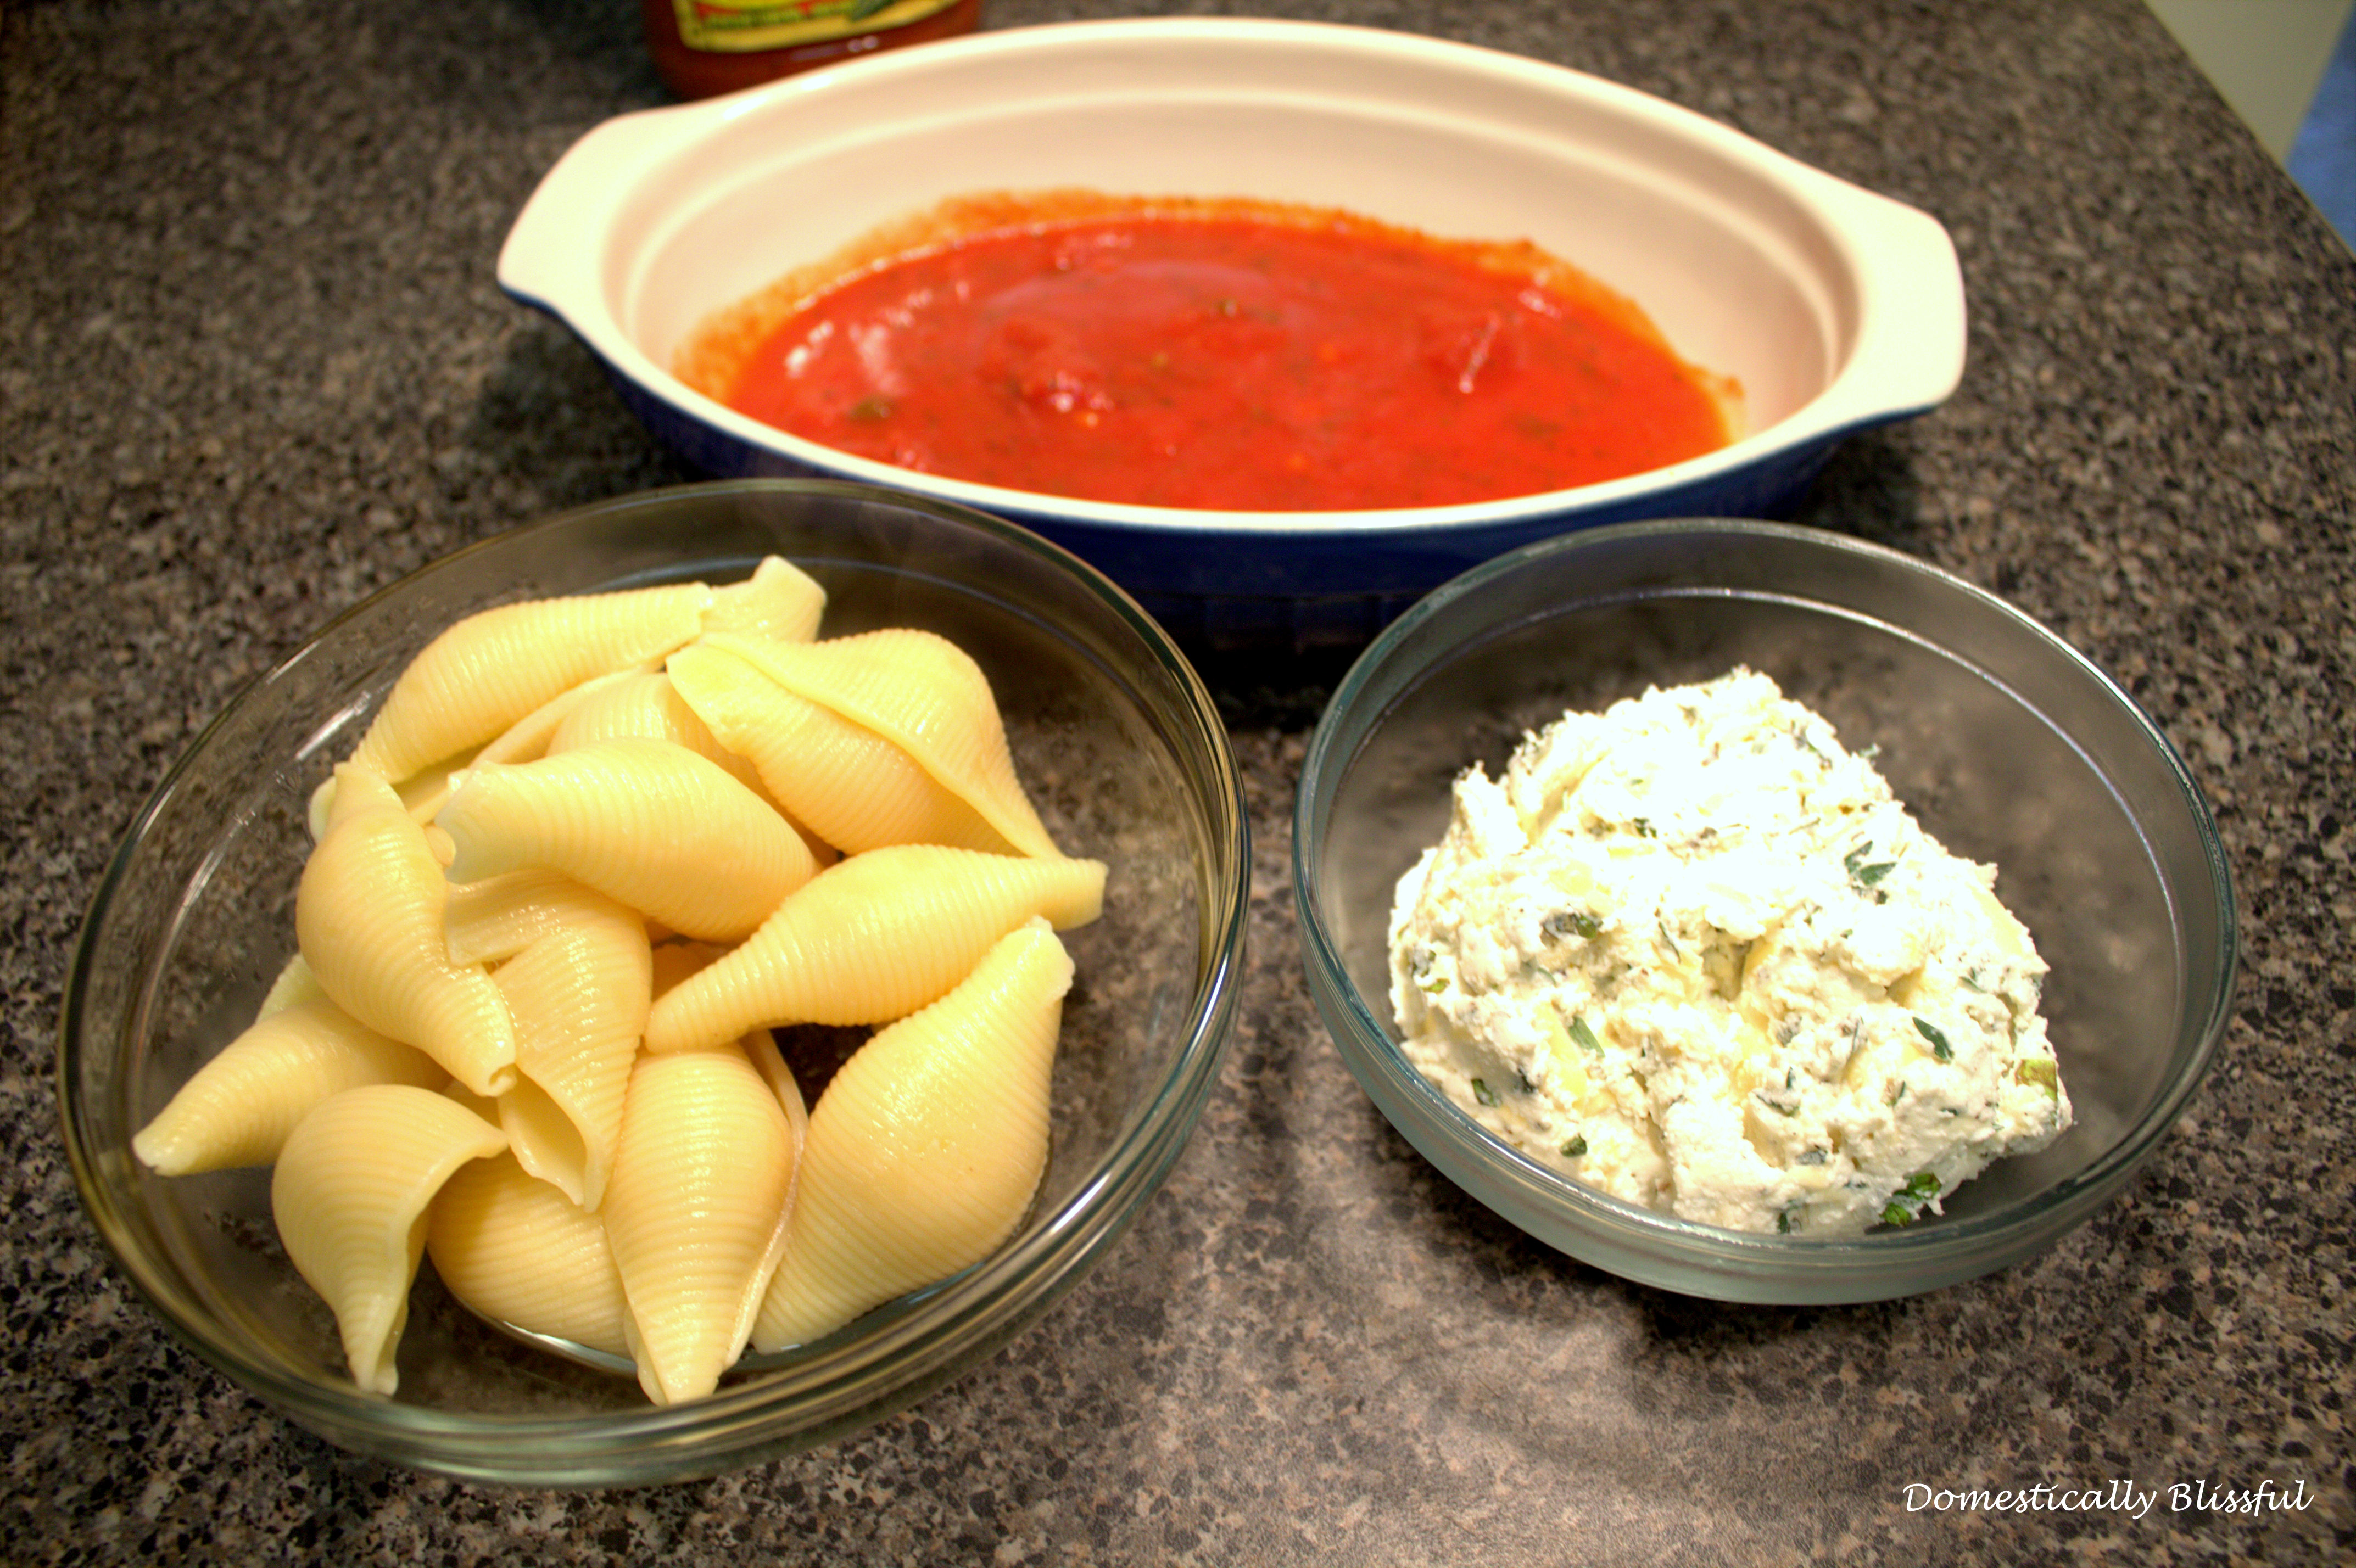 Stuffed Shells with Herbed Ricotta Cheese - Prep